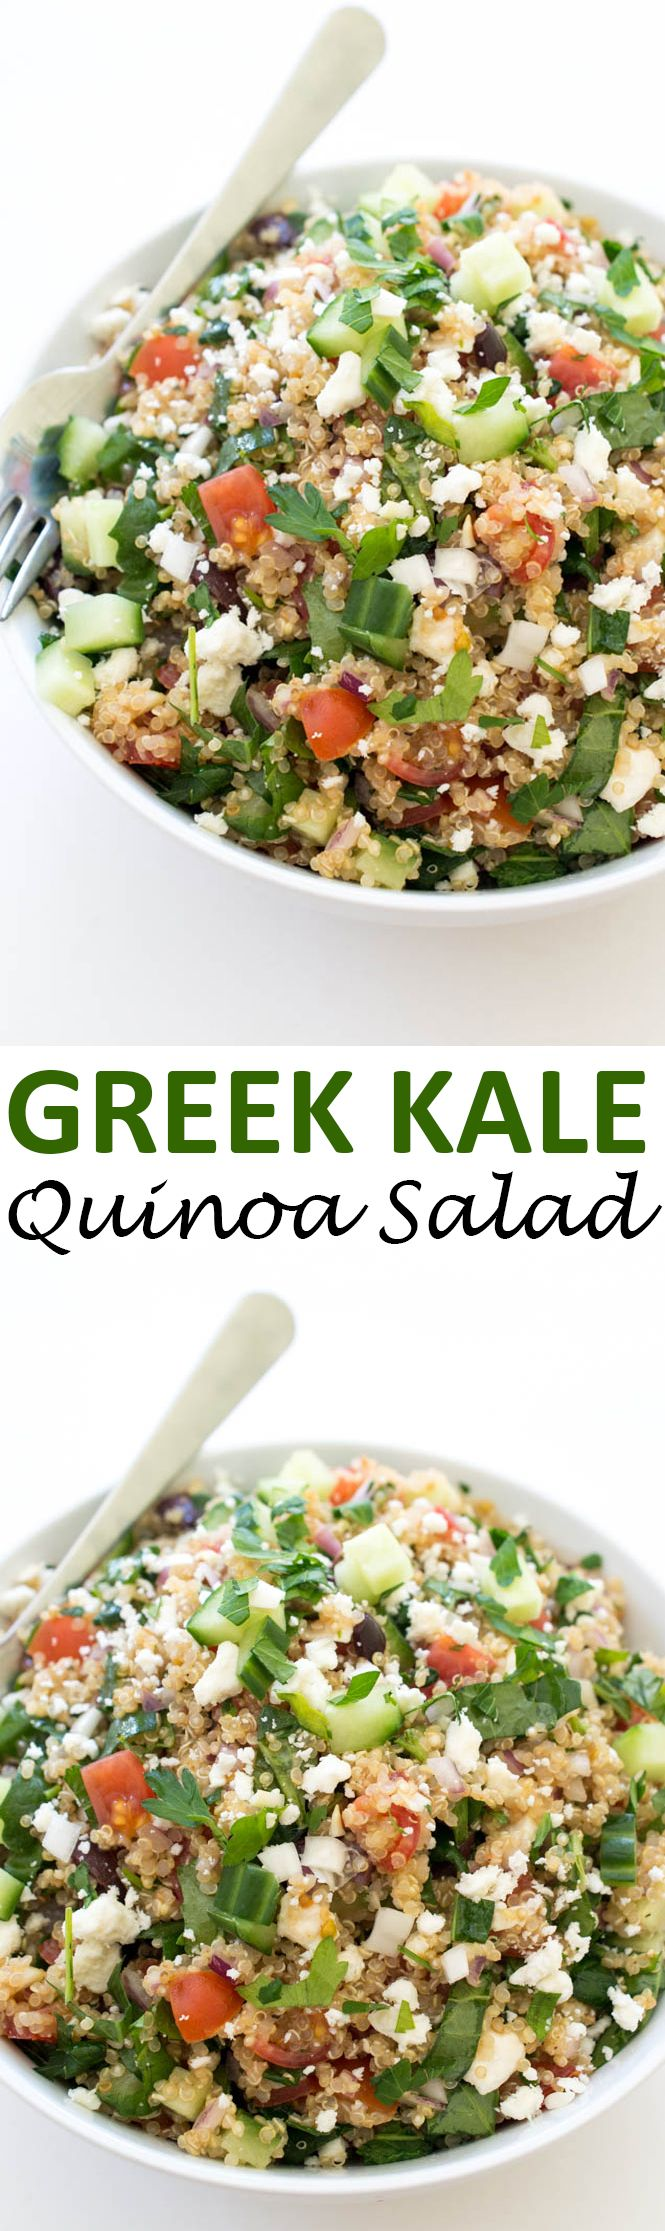 30 Minute Greek Kale Quinoa Salad ~ loaded with tons of vegetables and tossed with lemon and olive oil!